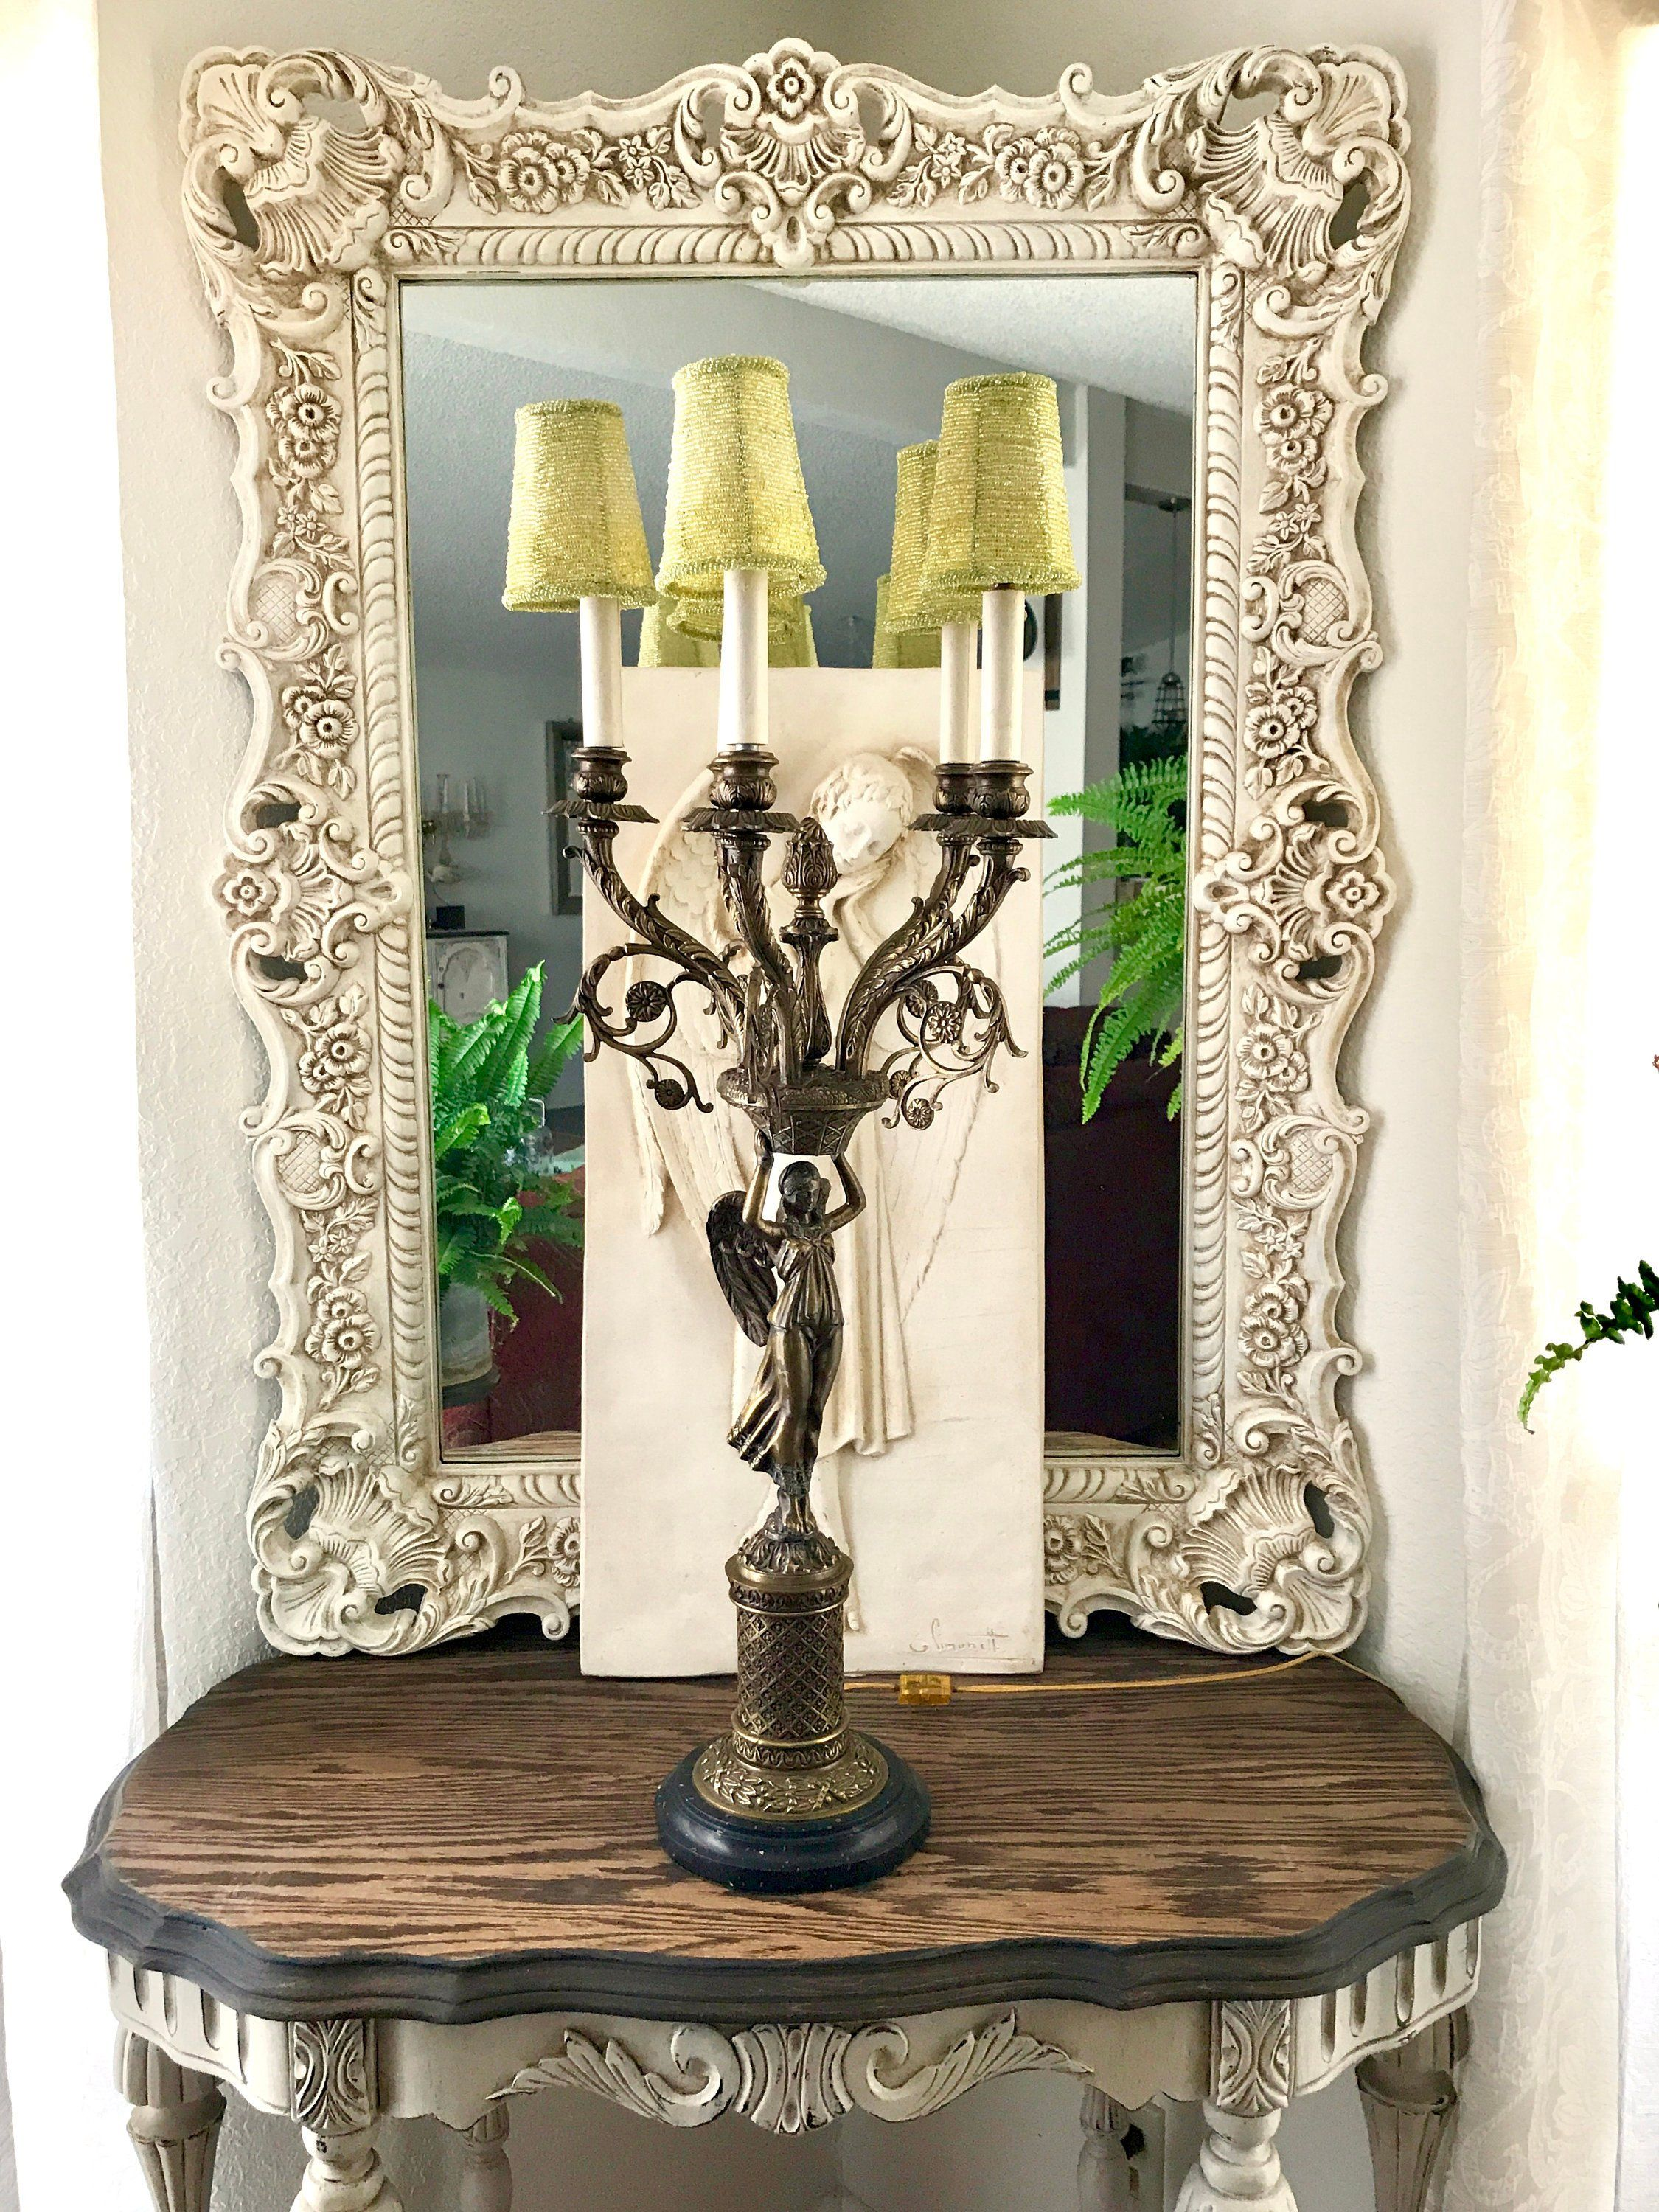 Antique Angel Bronze Candelabra Lamp 33 Tall 5 Arm Candelabra Table Lamp With Figural Angel And Marble B Bronze Candelabras Victorian Lamps Bronze Table Lamp